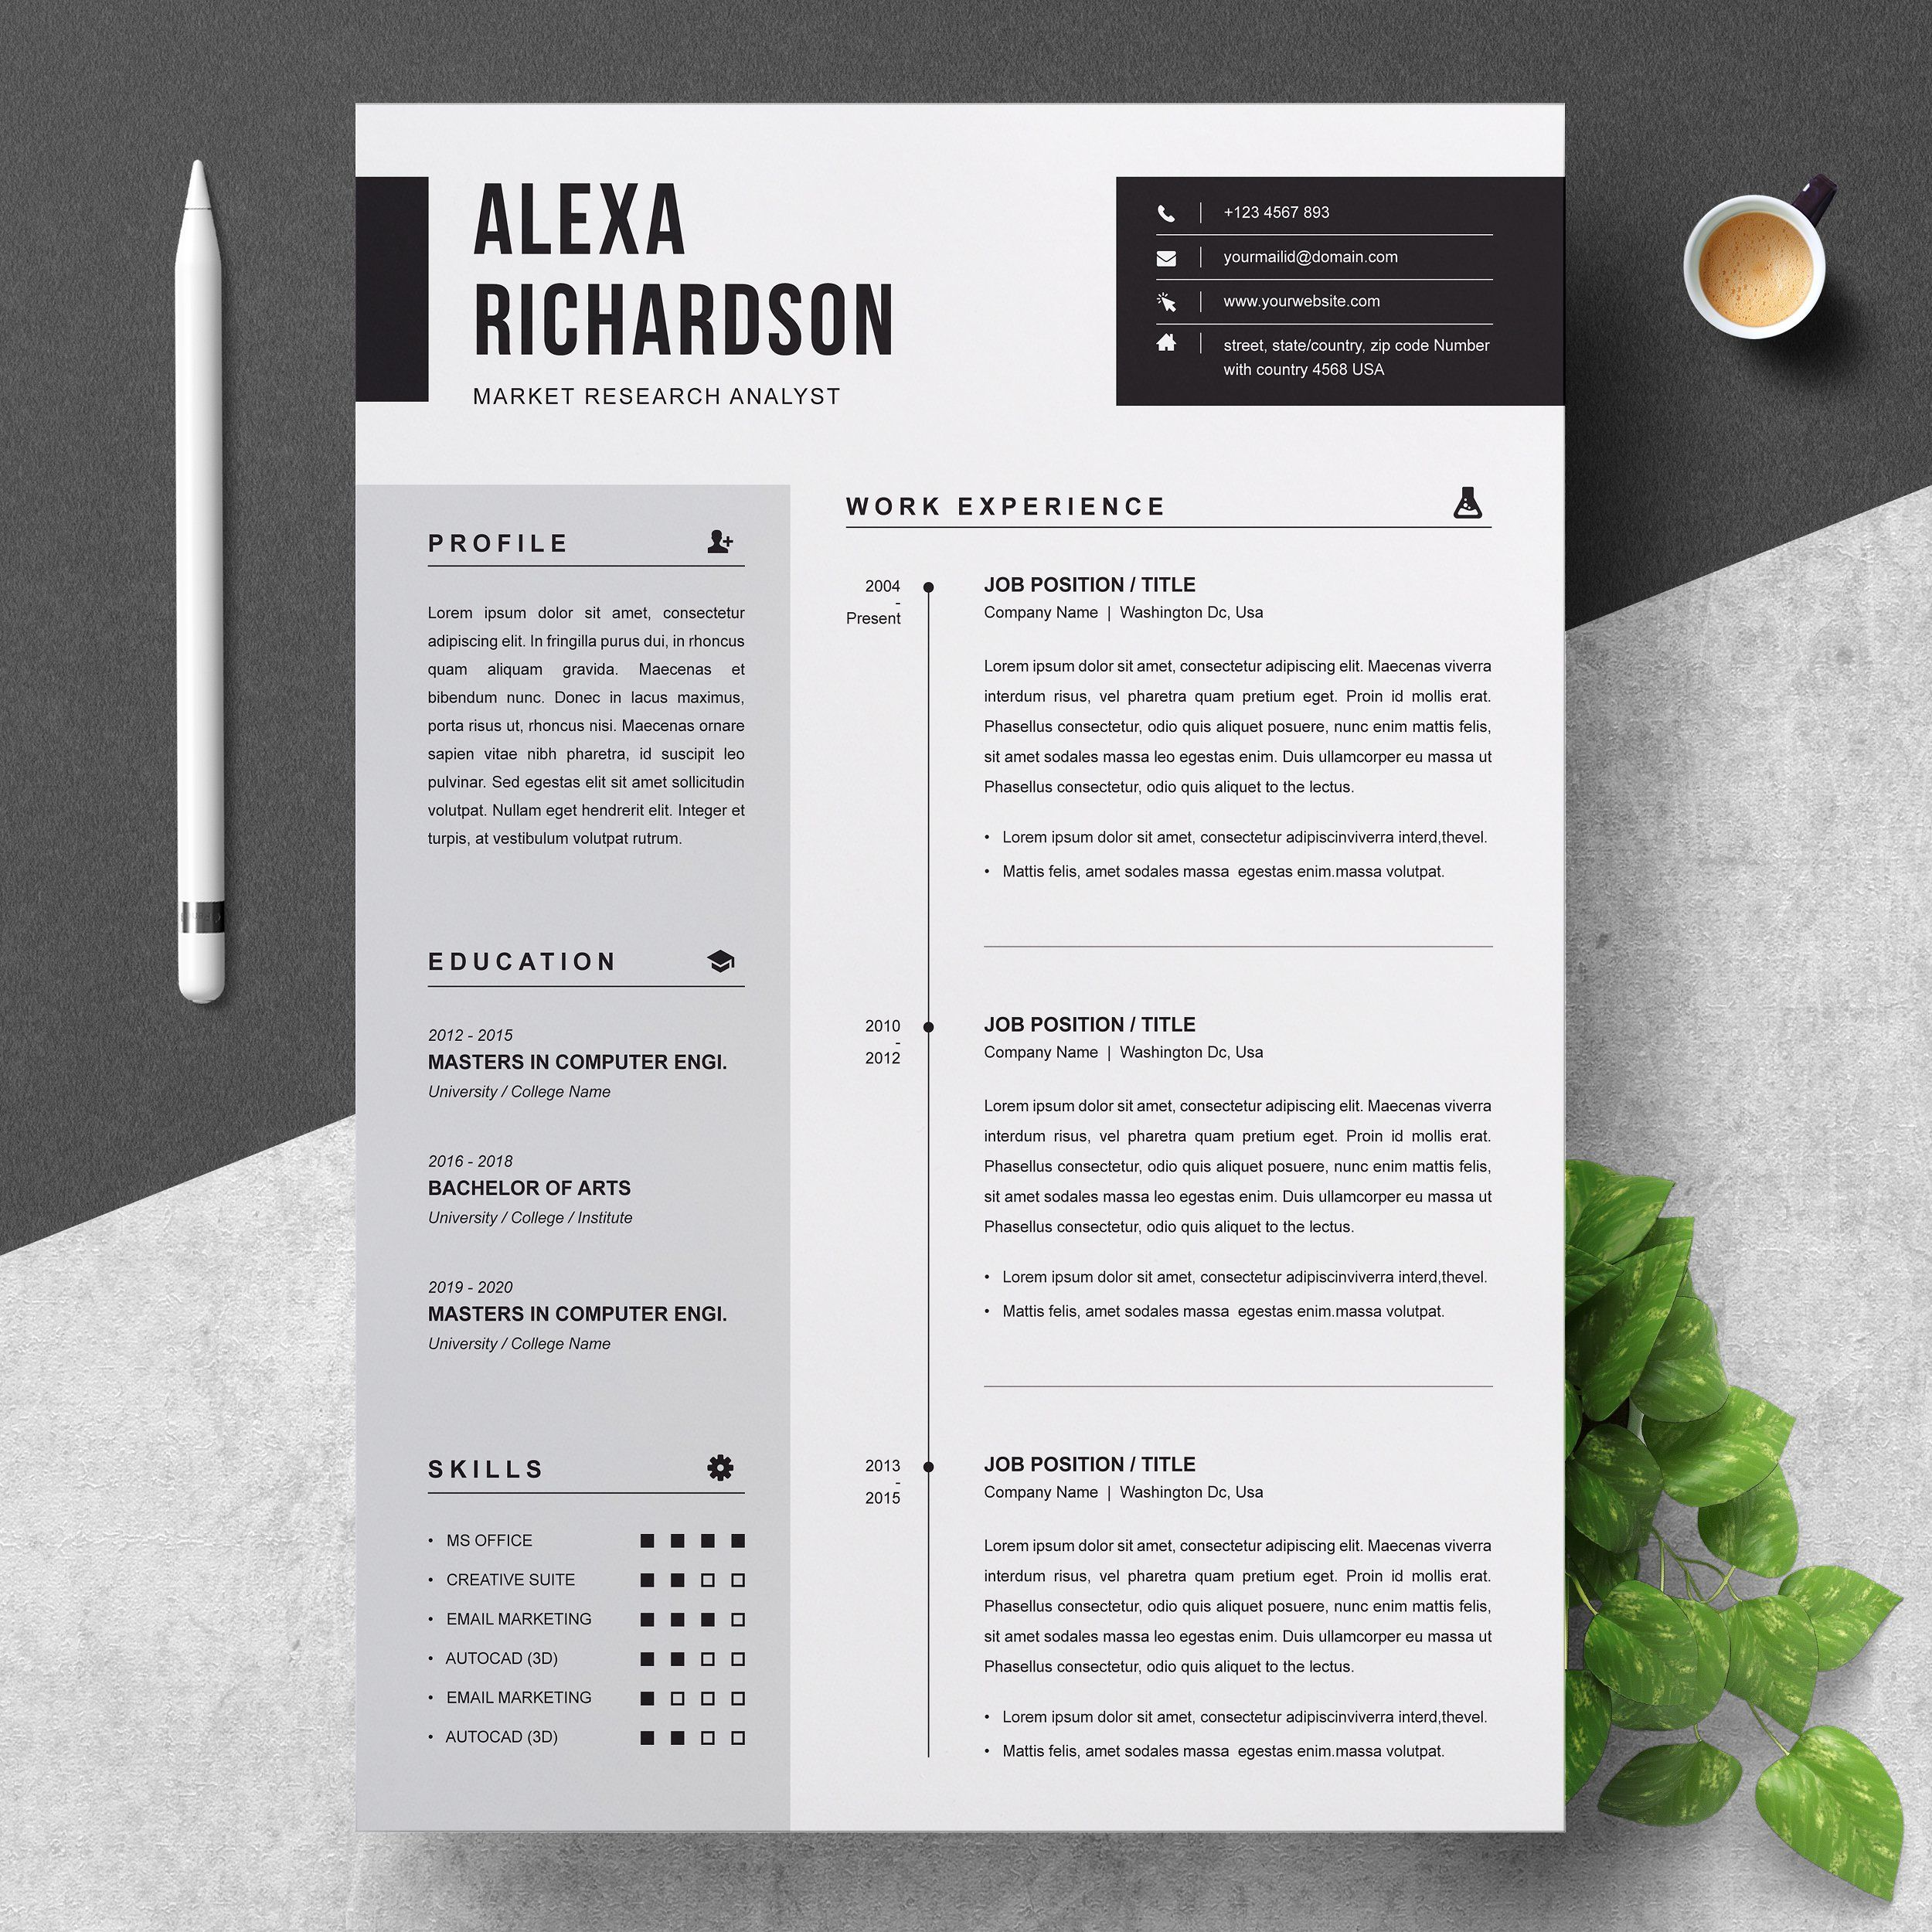 Resume CV Template Clean Modern and Professional Resume and Letterhead design Fully customizable easy to use and replace color & text Guaranteed to help land your dream job resume branding job application cv portfolio minimal